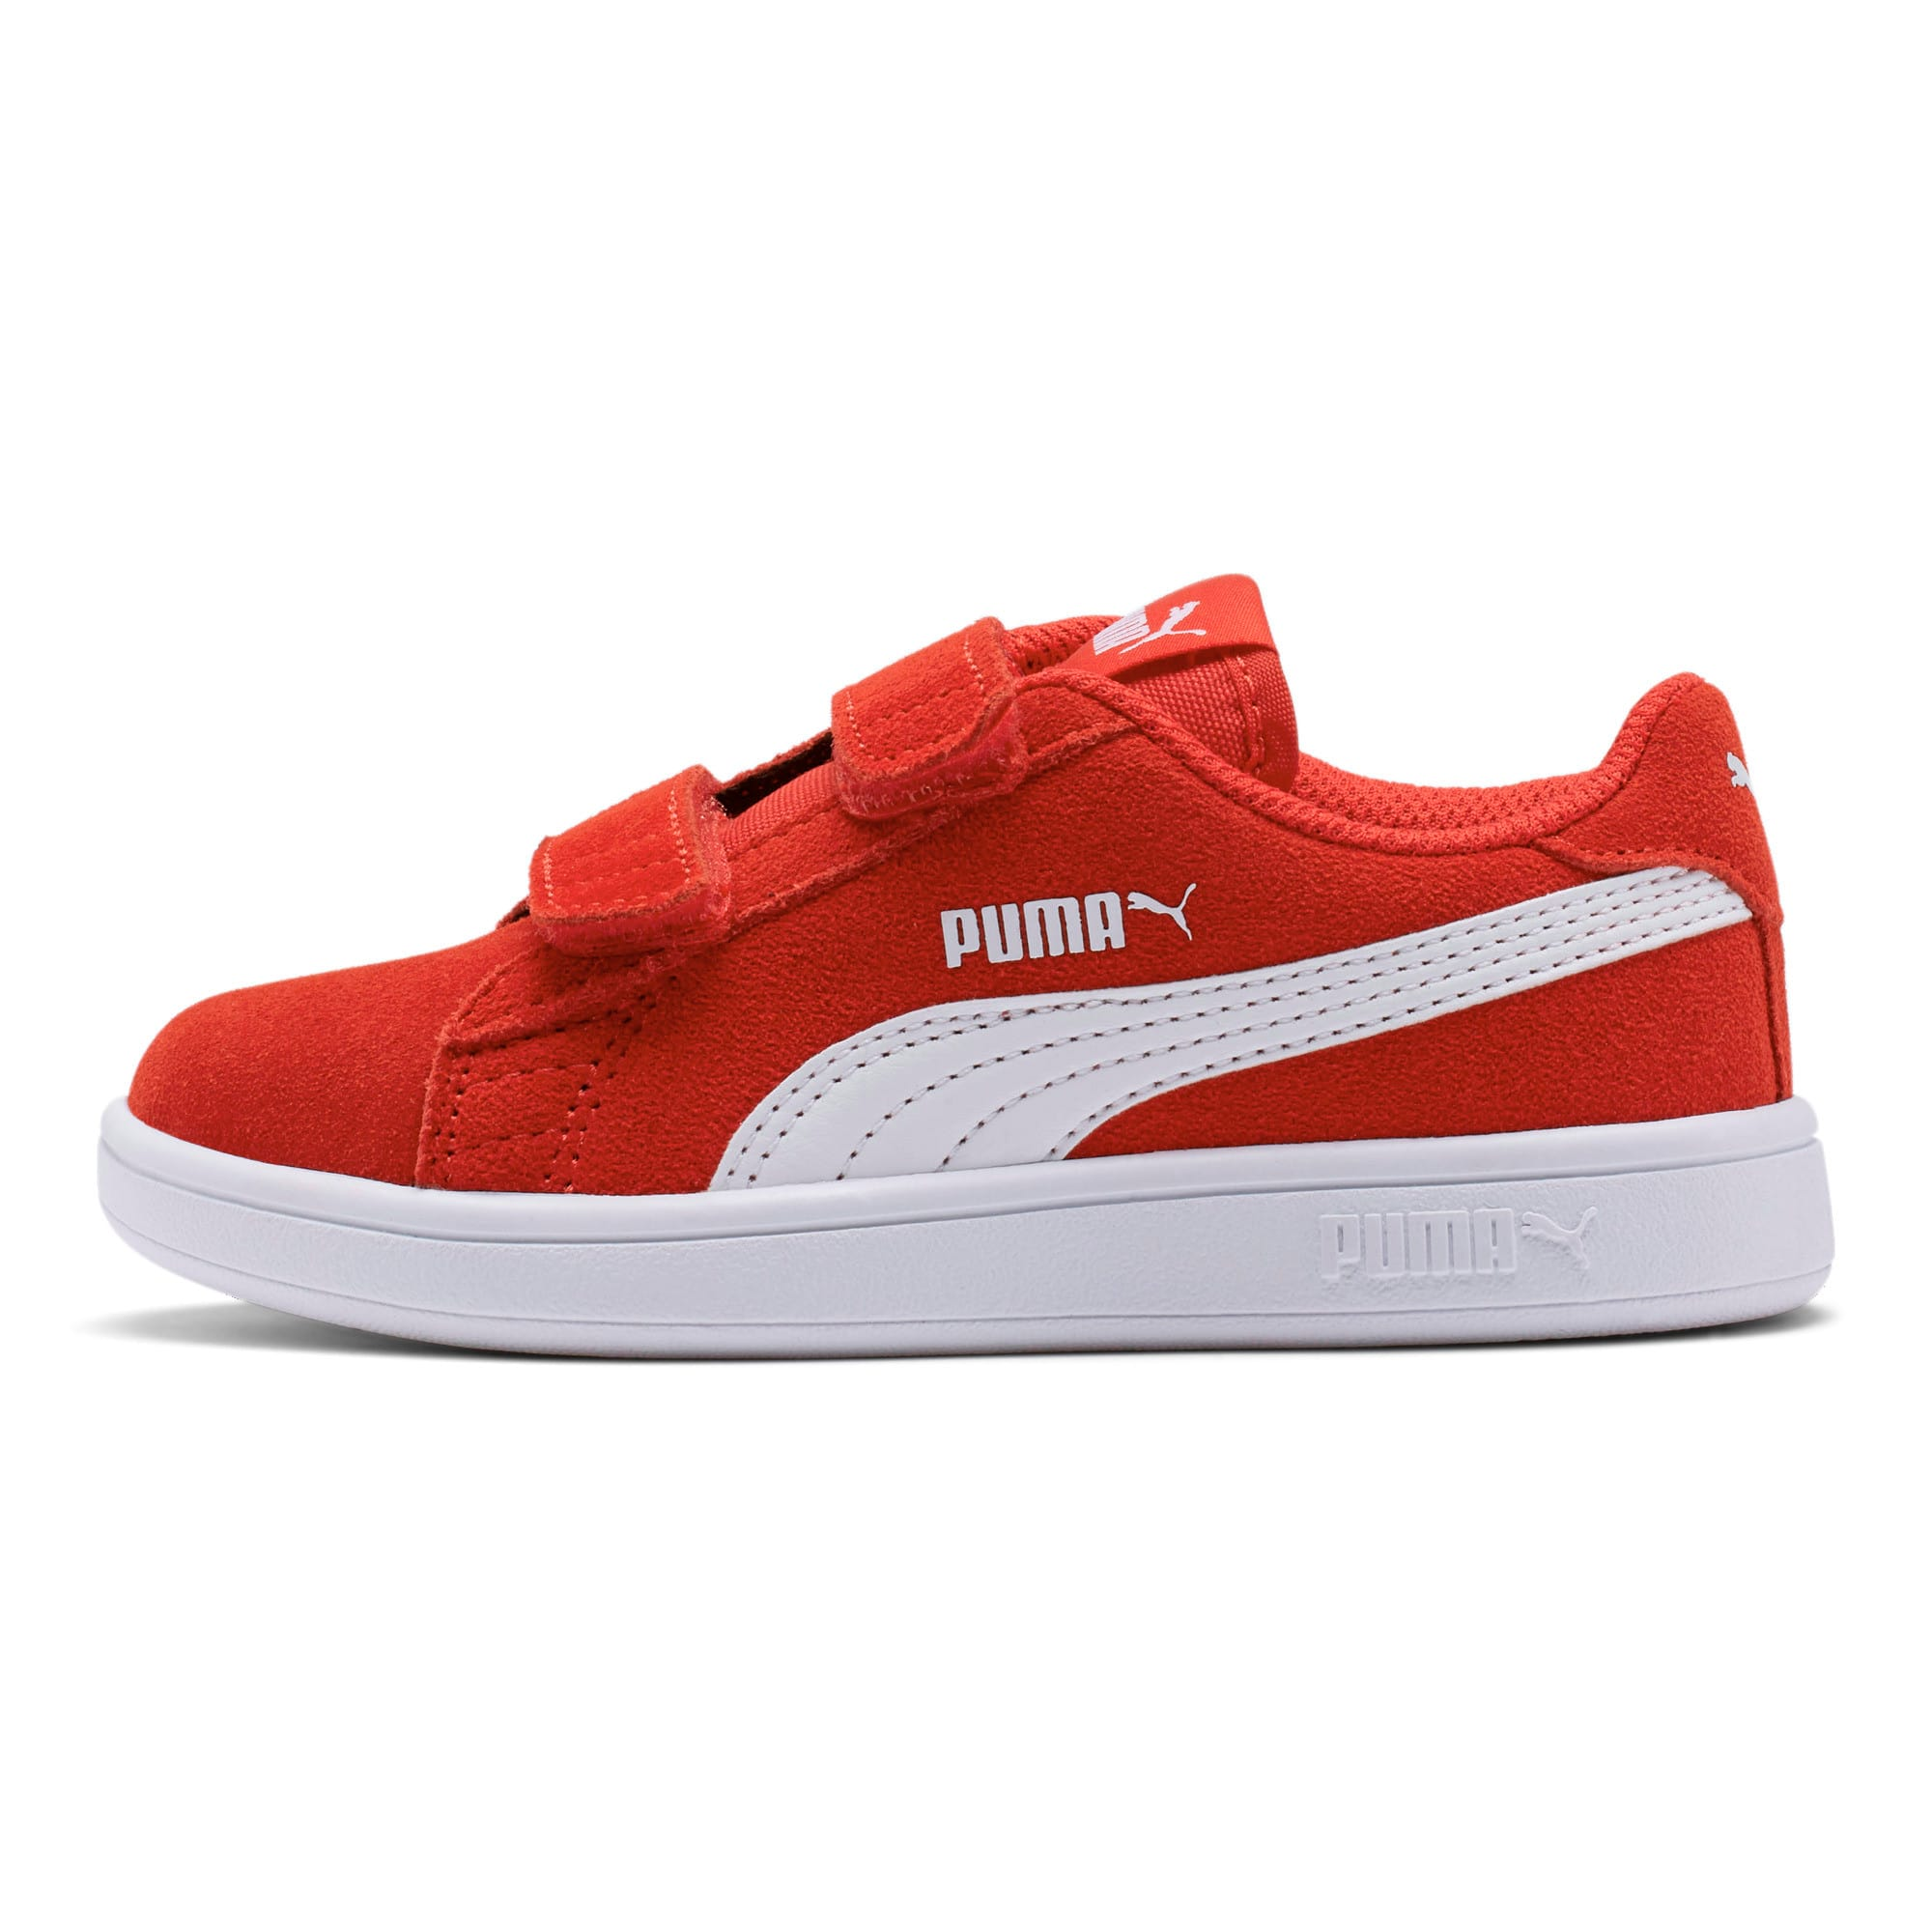 low priced 886a2 c5ae1 Smash v2 Suede Little Kids' Shoes